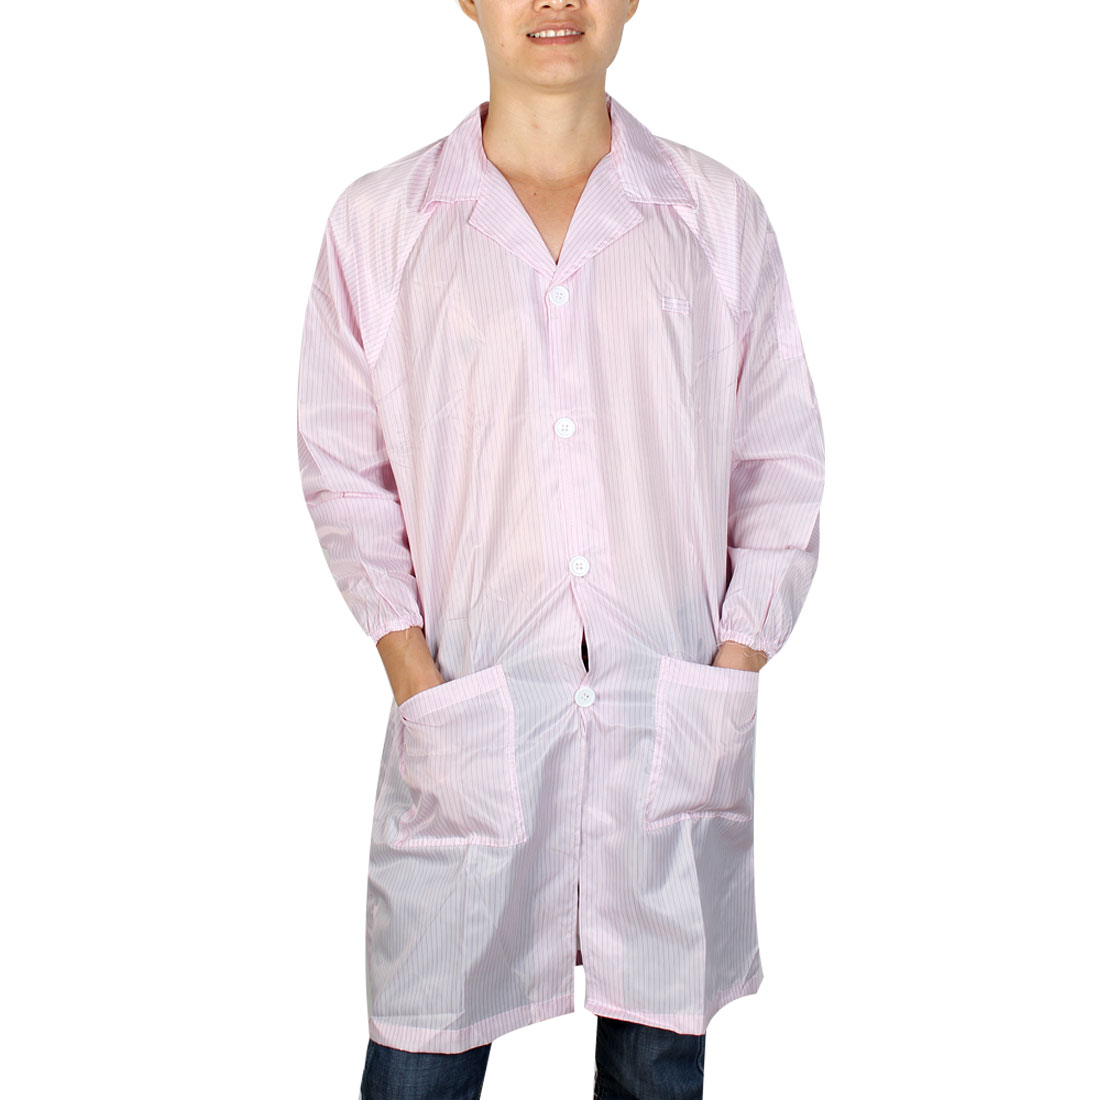 Unisex Long Sleeve Stripes Pattern Anti Static Overalls Coat Pink X Large